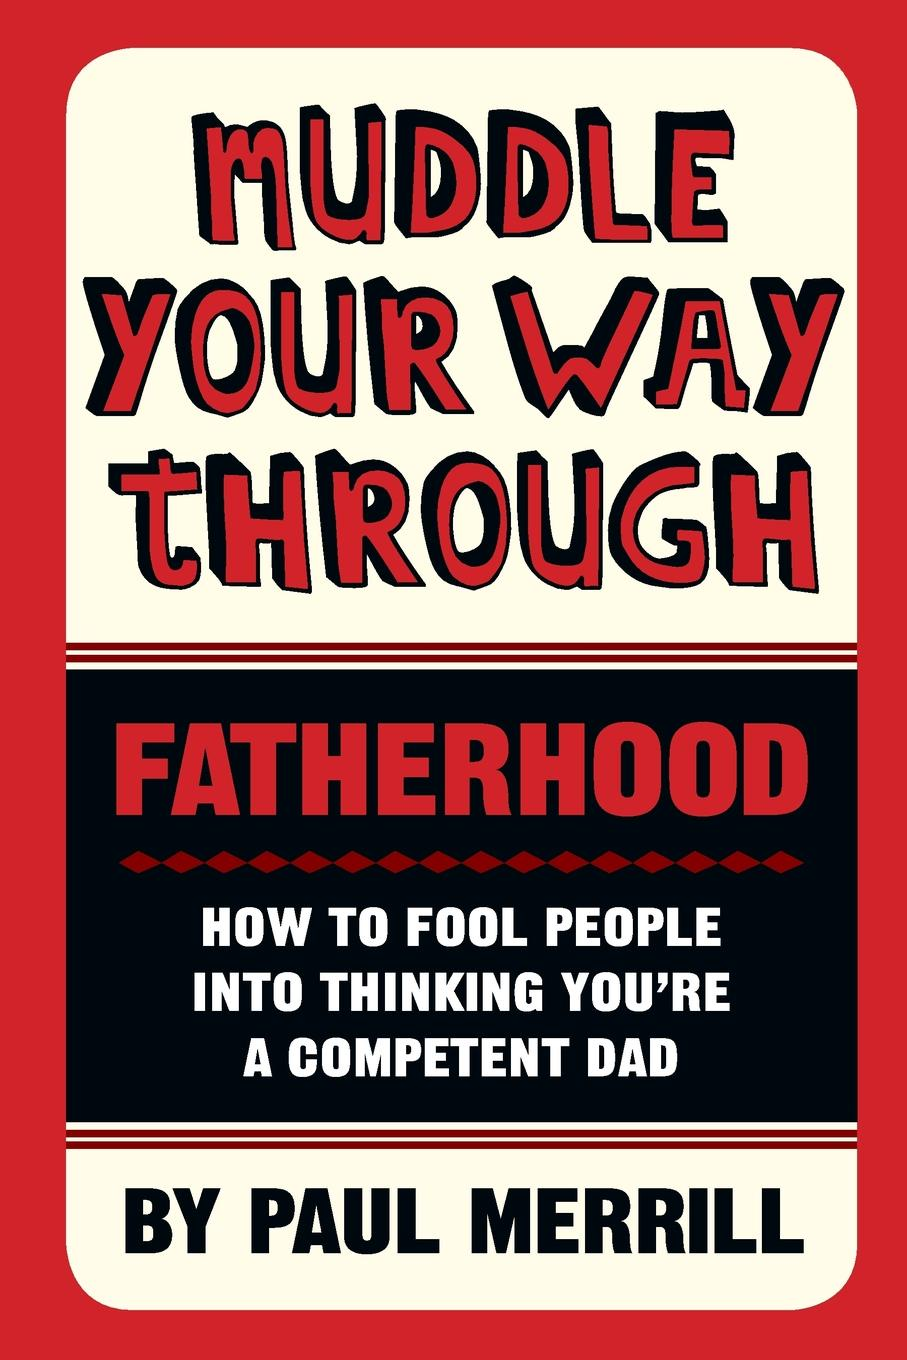 Paul Merrill Muddle Your Way Through Fatherhood. How to fool people into thinking you're a competent dad shirley wheeldon pocket size handbook for dads who don t have a clue